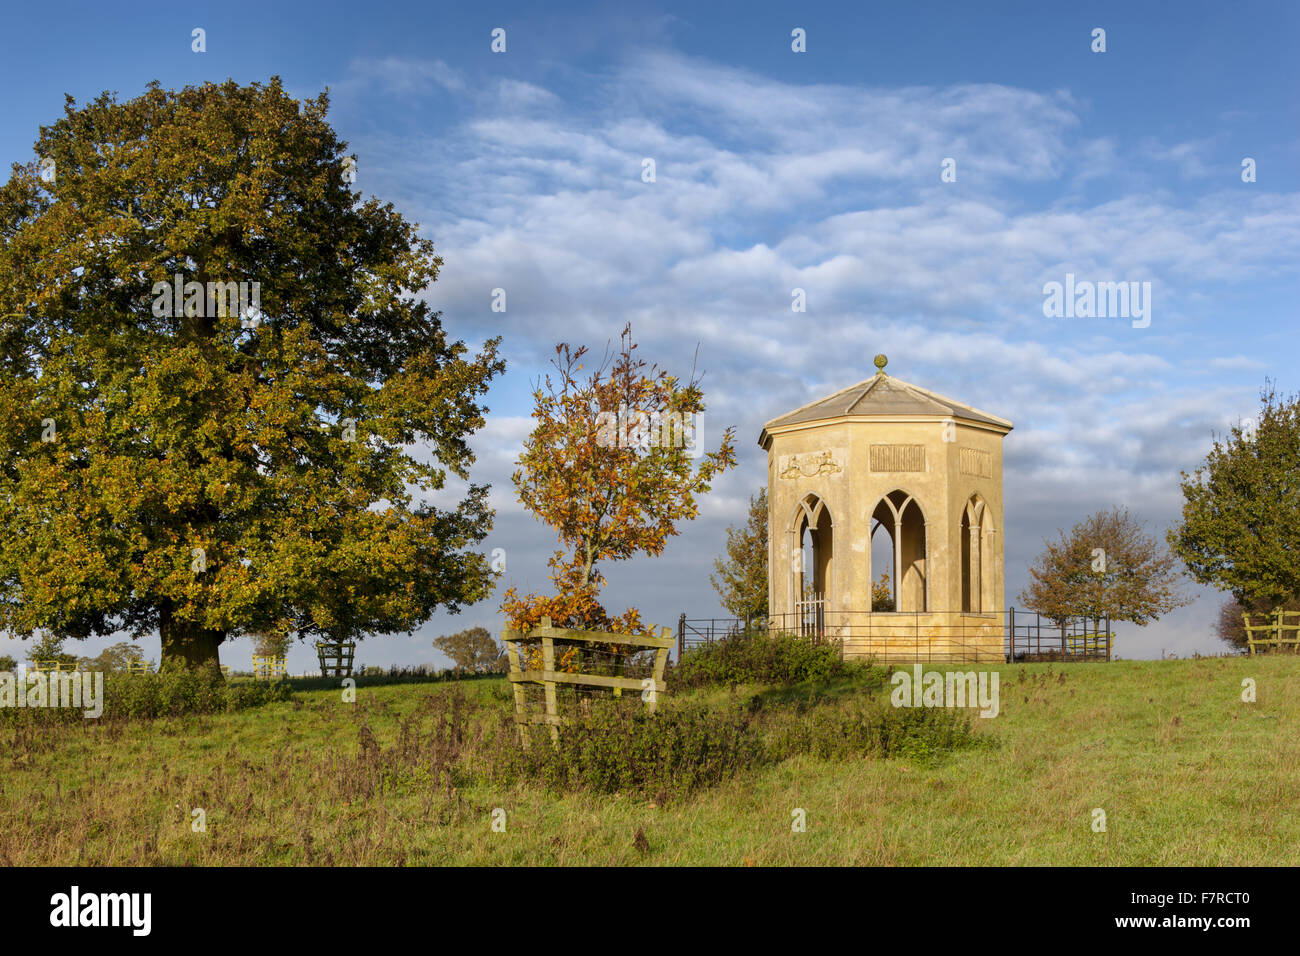 The Gothic Umbrello at Stowe, Buckinghamshire. Stowe is an 18th century landscaped garden, and includes more than - Stock Image